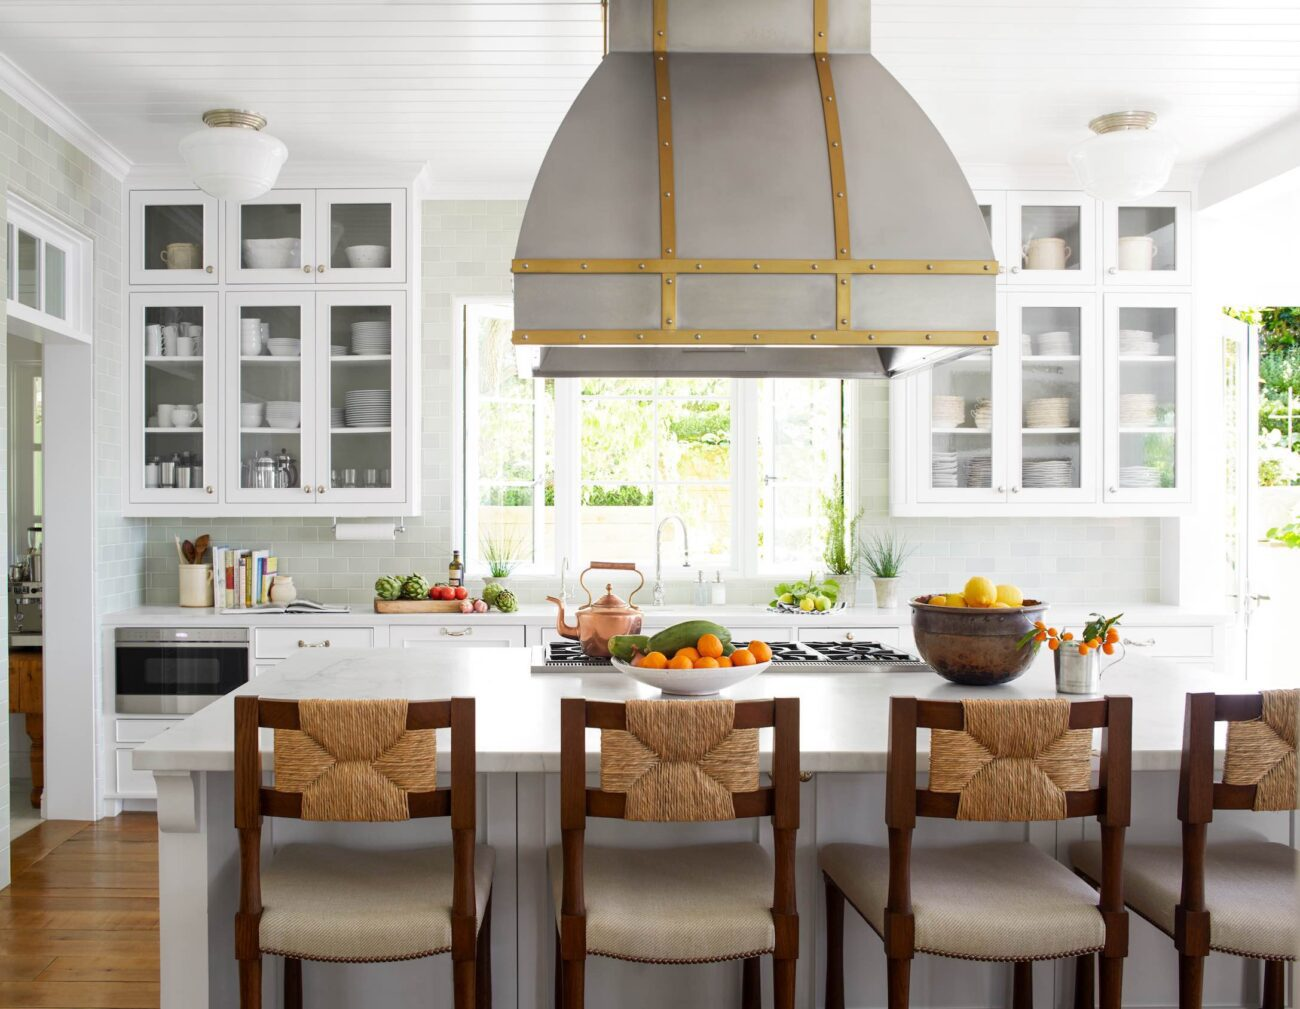 It's always worth spending a little time and effort decorating the places where you spend the most time. Personalize your kitchen today with these tips.